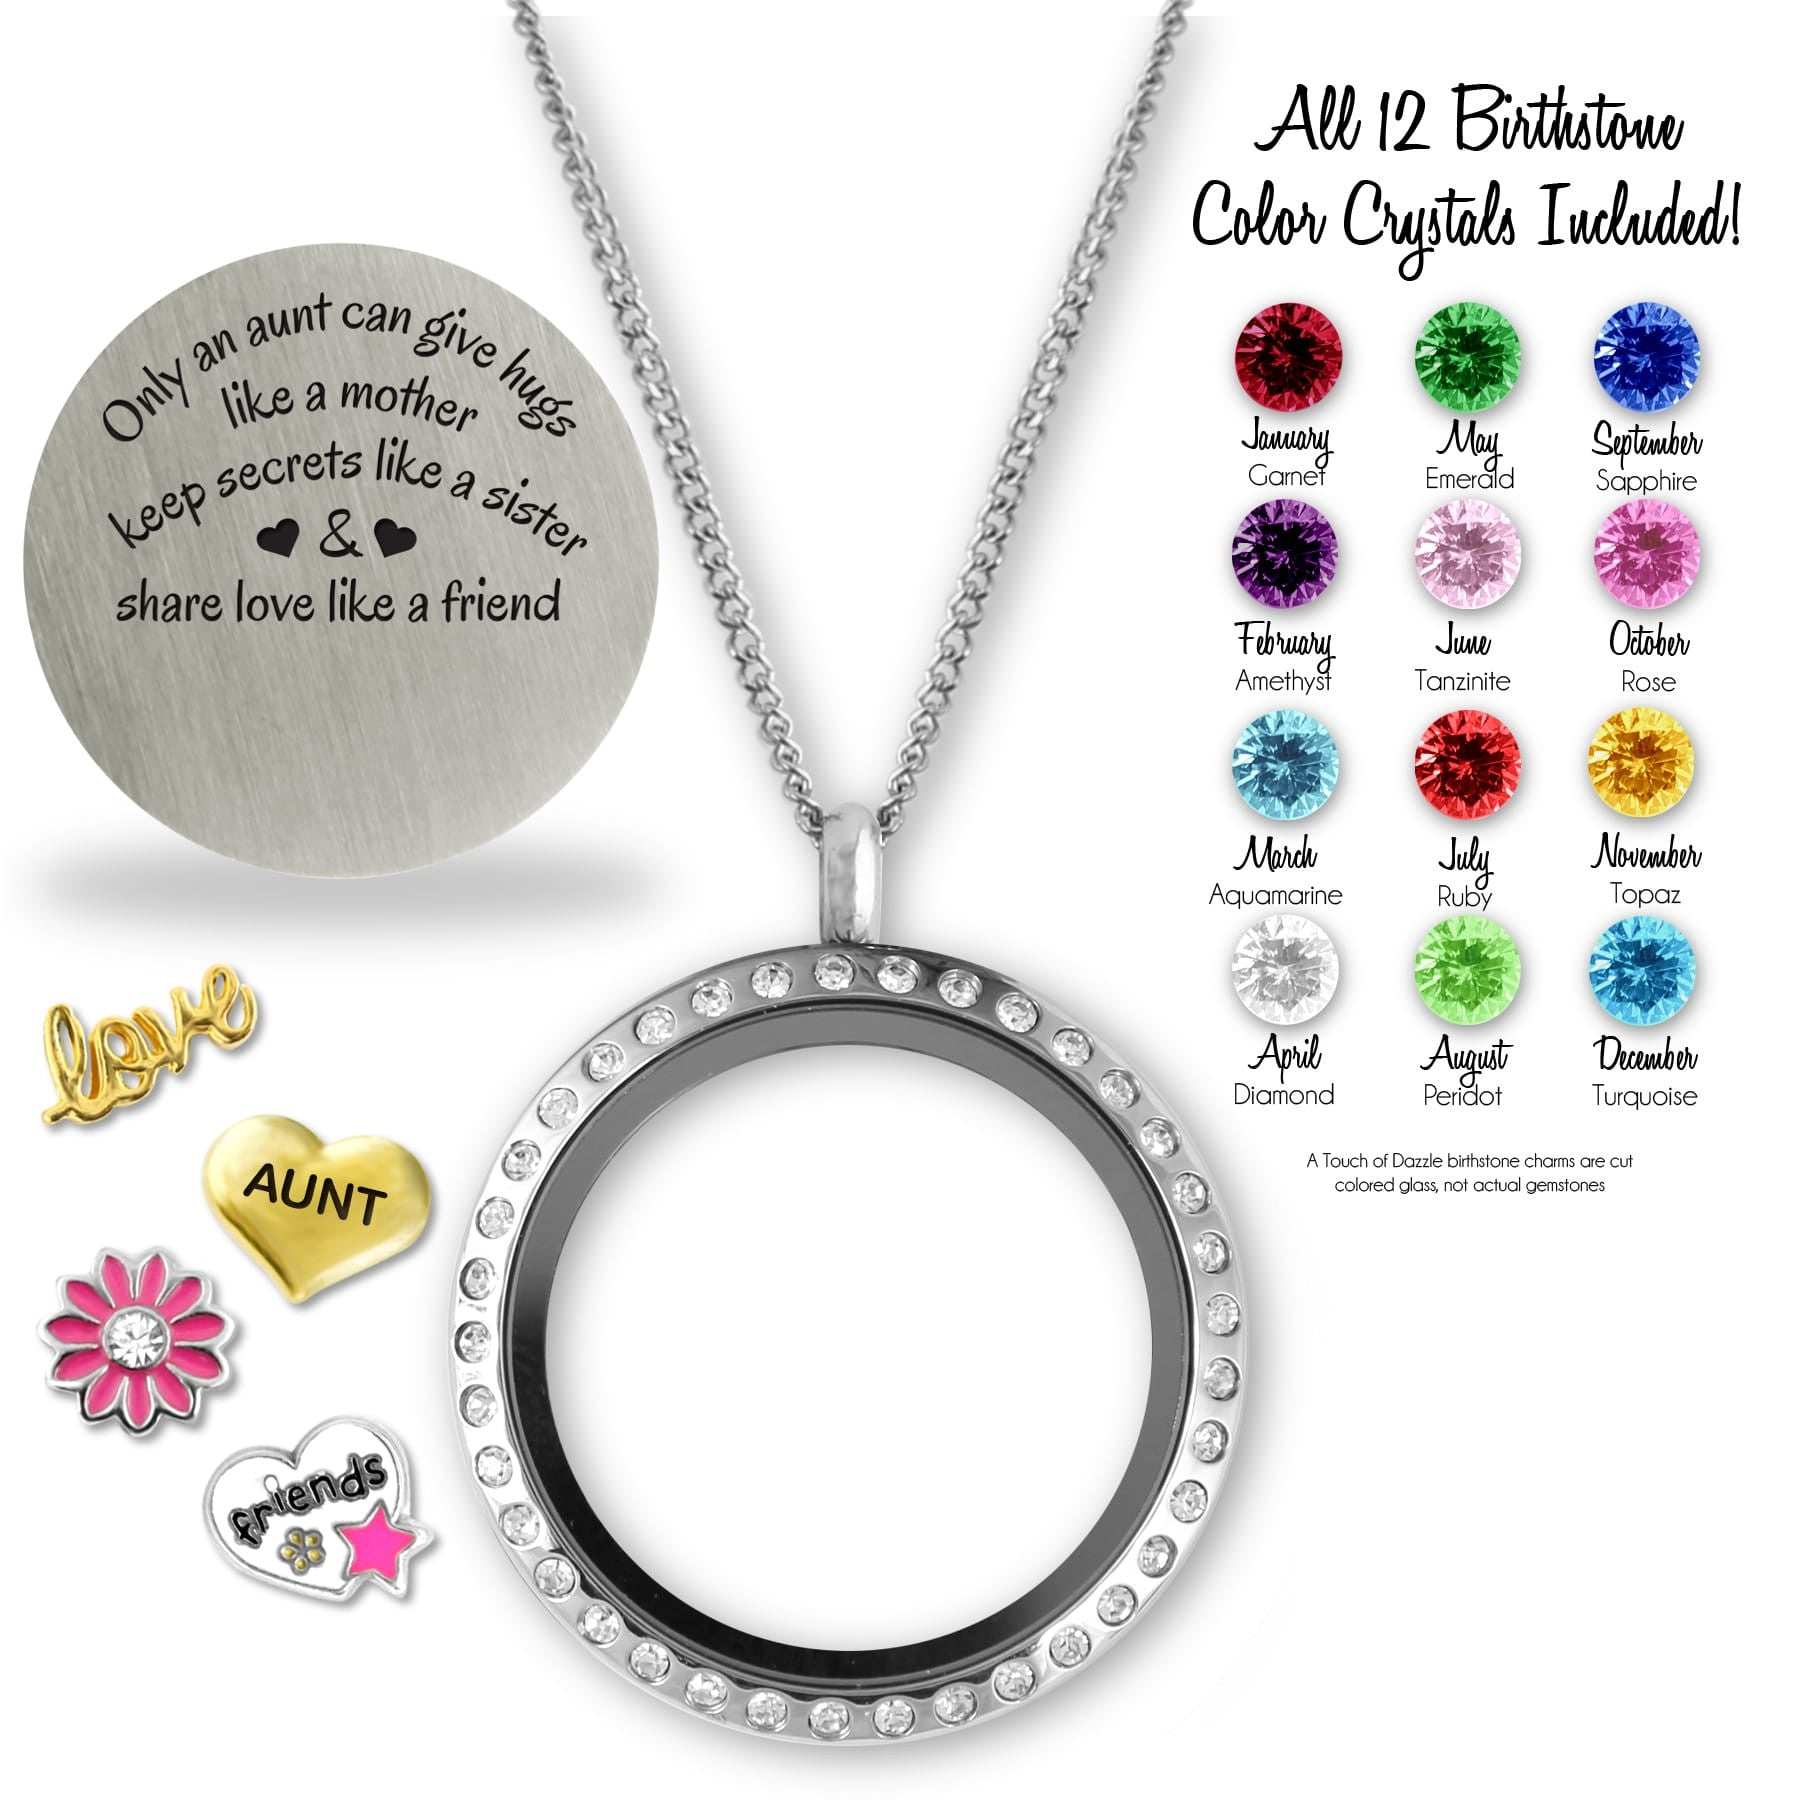 and to infinite pink pinkroundinfinite jeweled love necklace personalized pechloforgi lockets you beyond charm i locket for girls